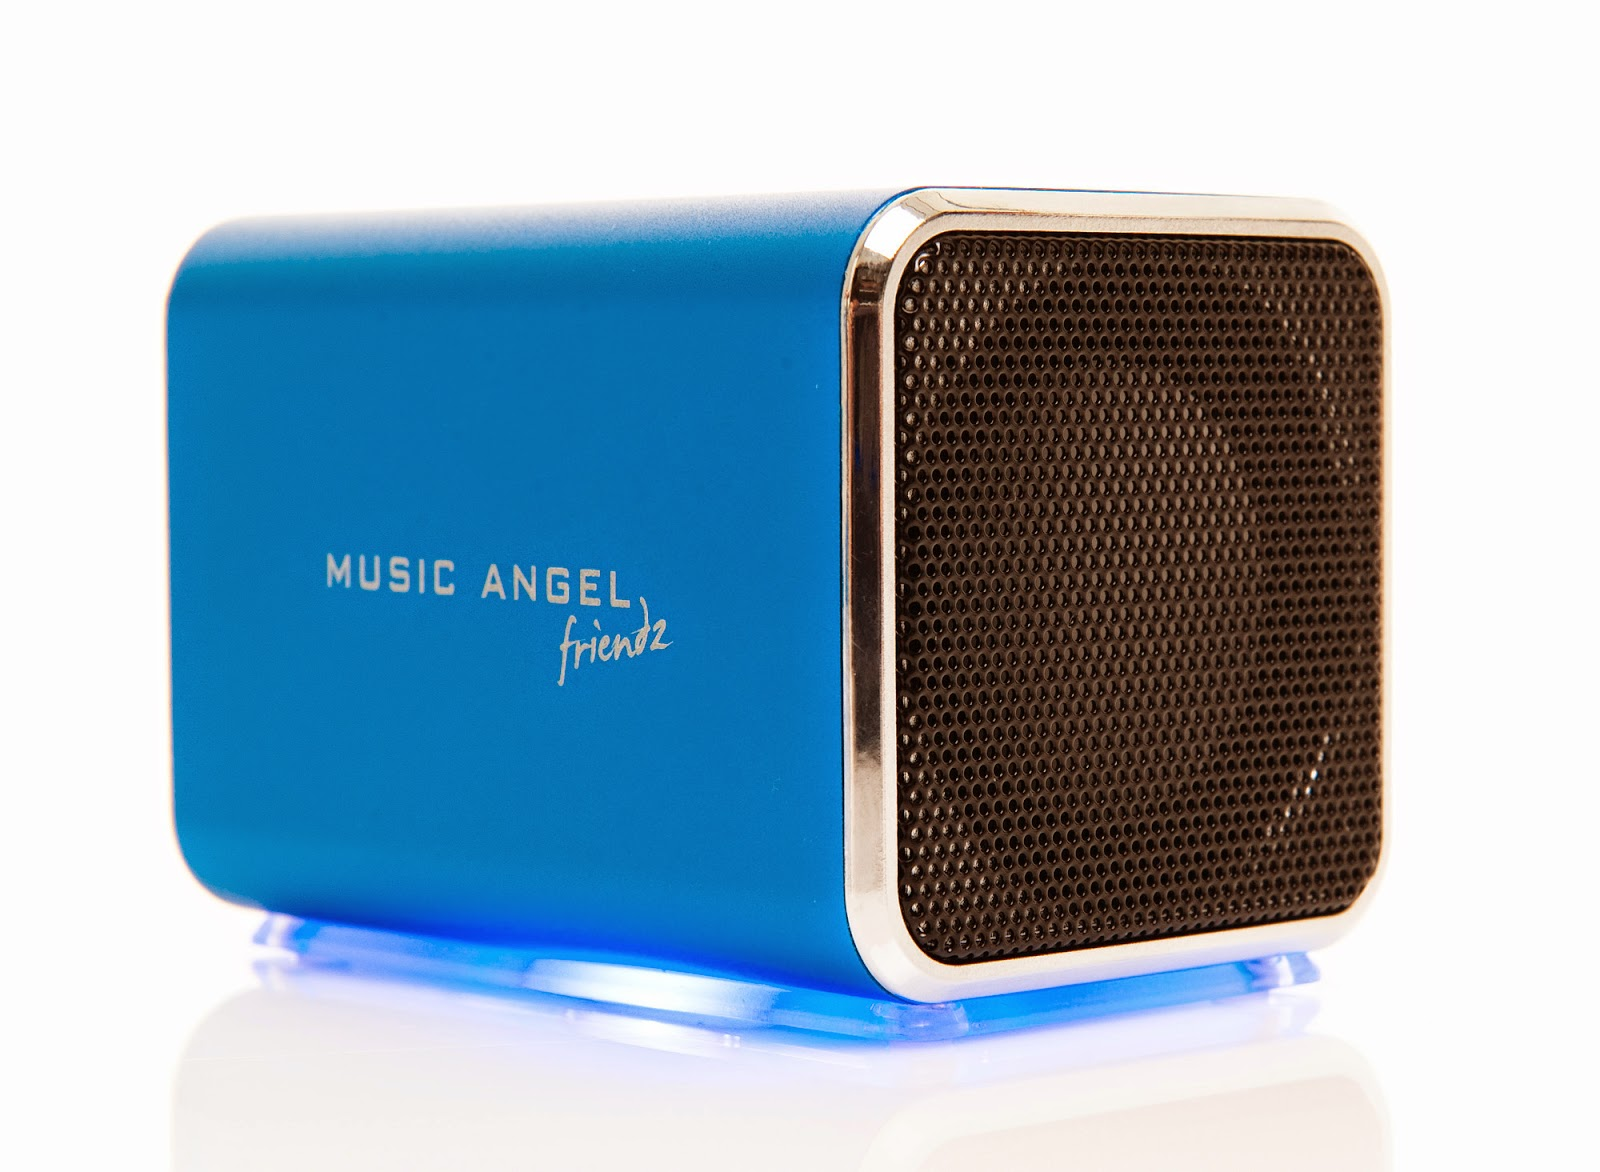 Music Angel Friendz review